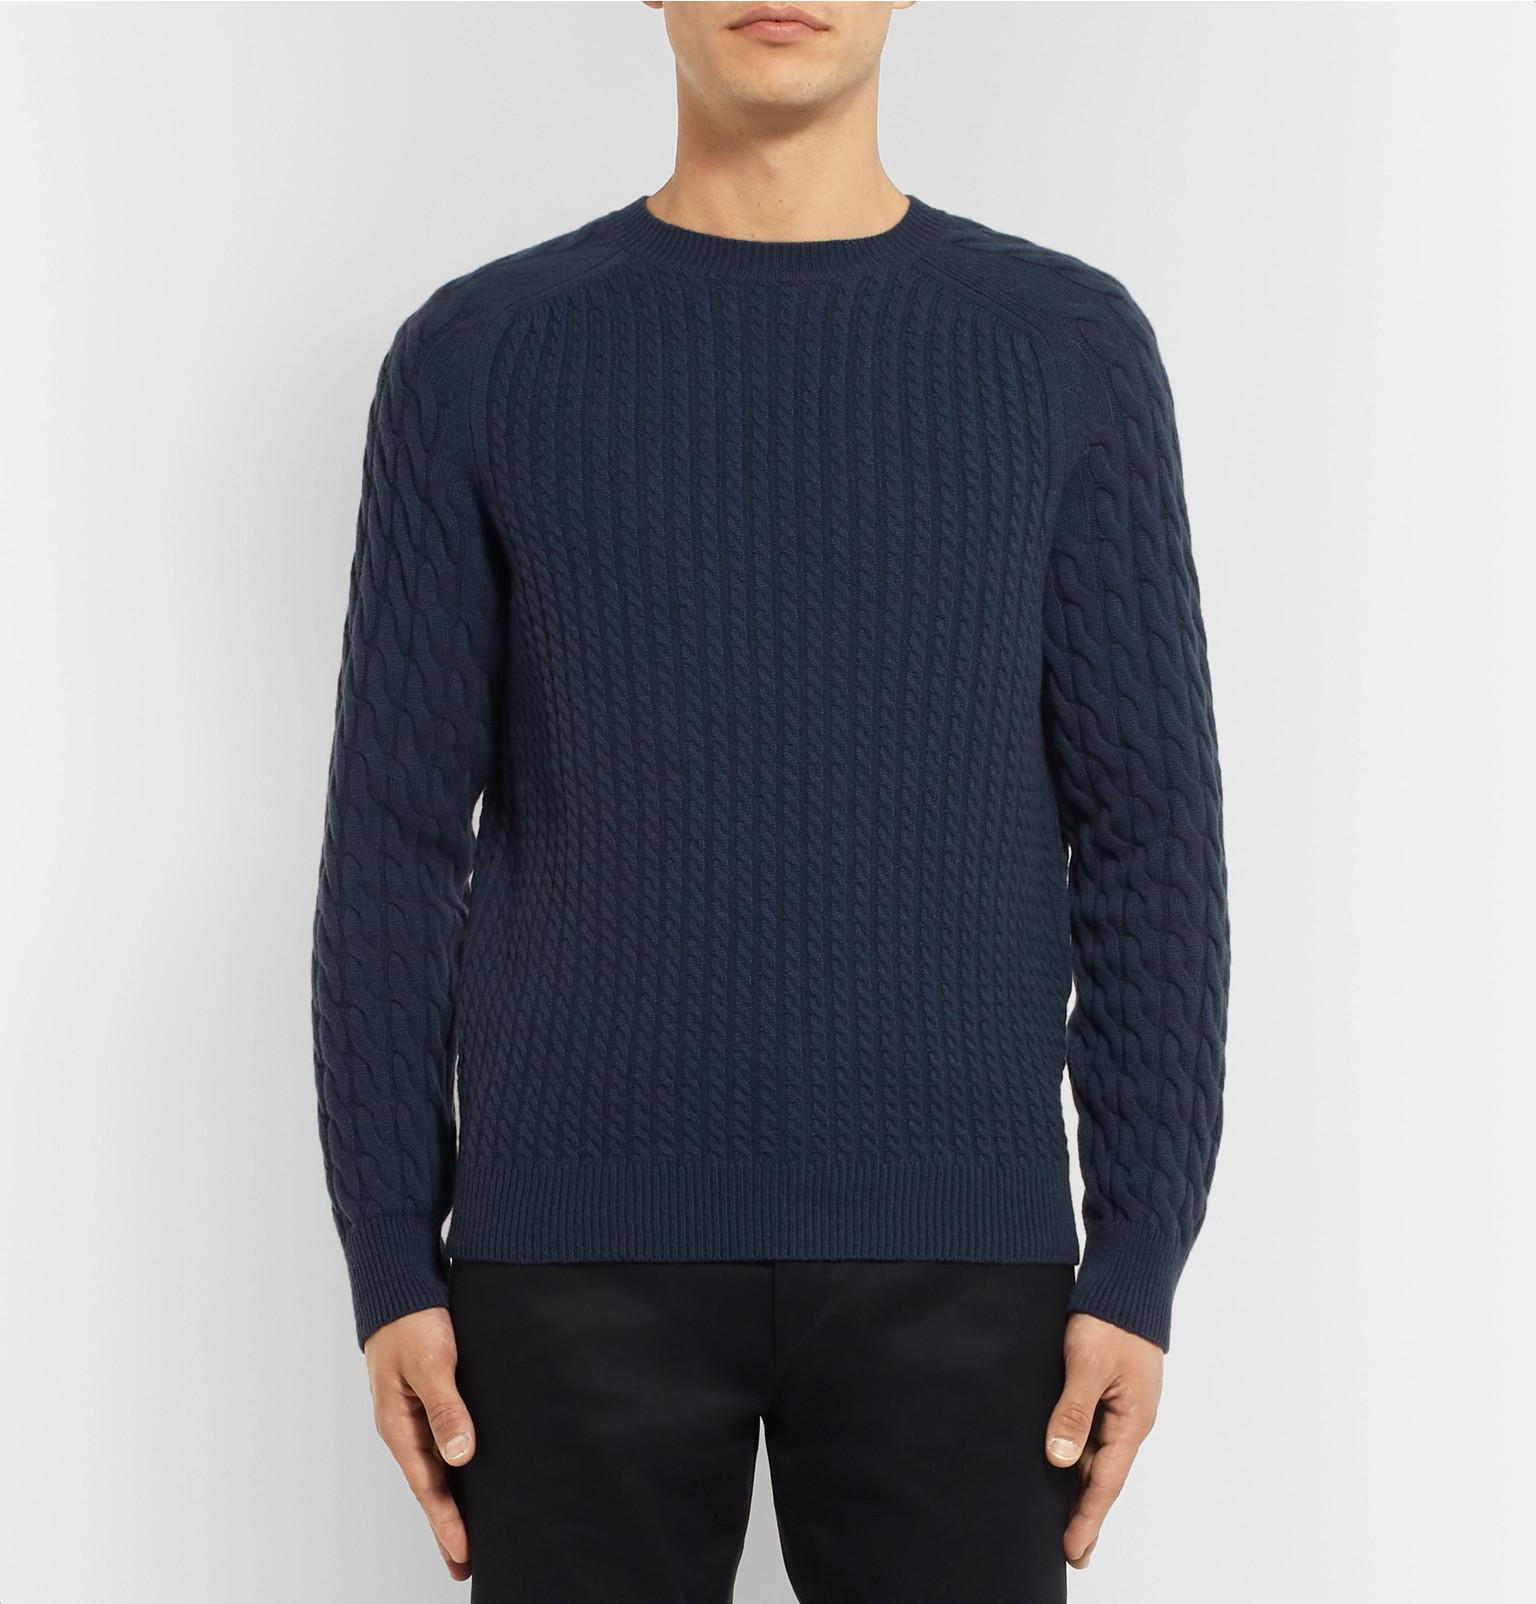 Men Cashmere Knit For Cable Dunhill Lyst In Blue Sweater Ocqnb786tw